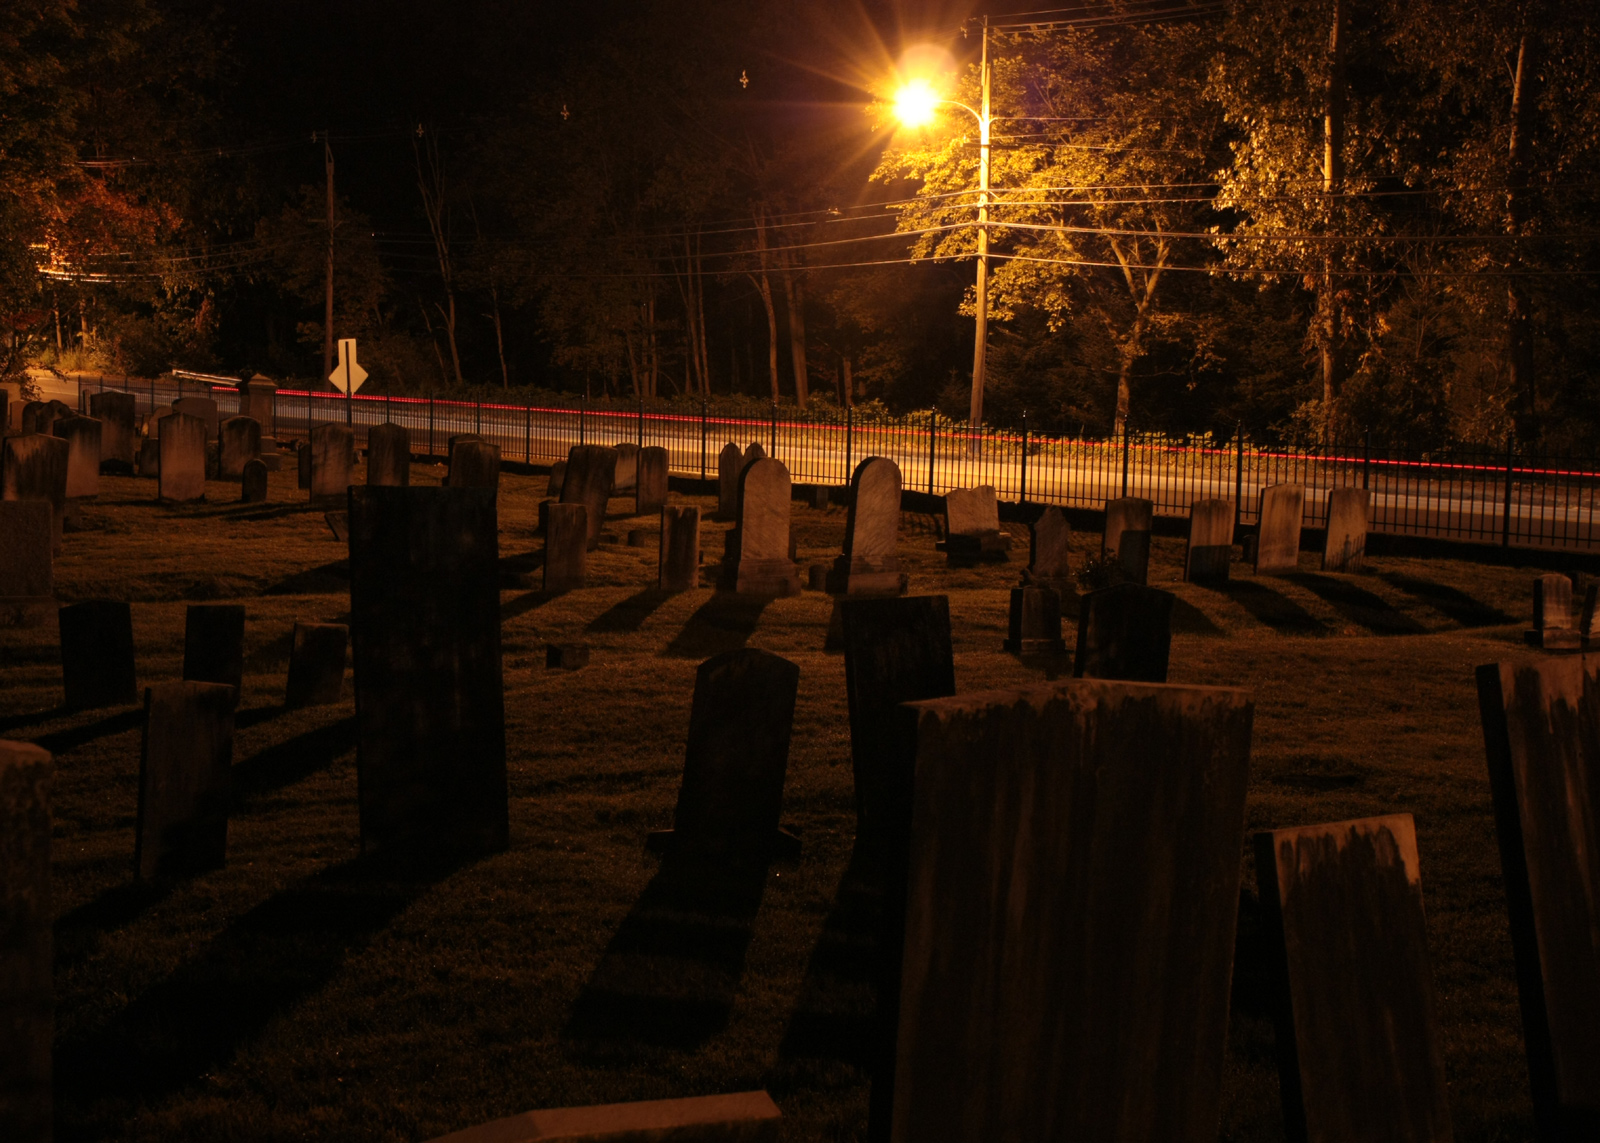 cemetery-at-night-light